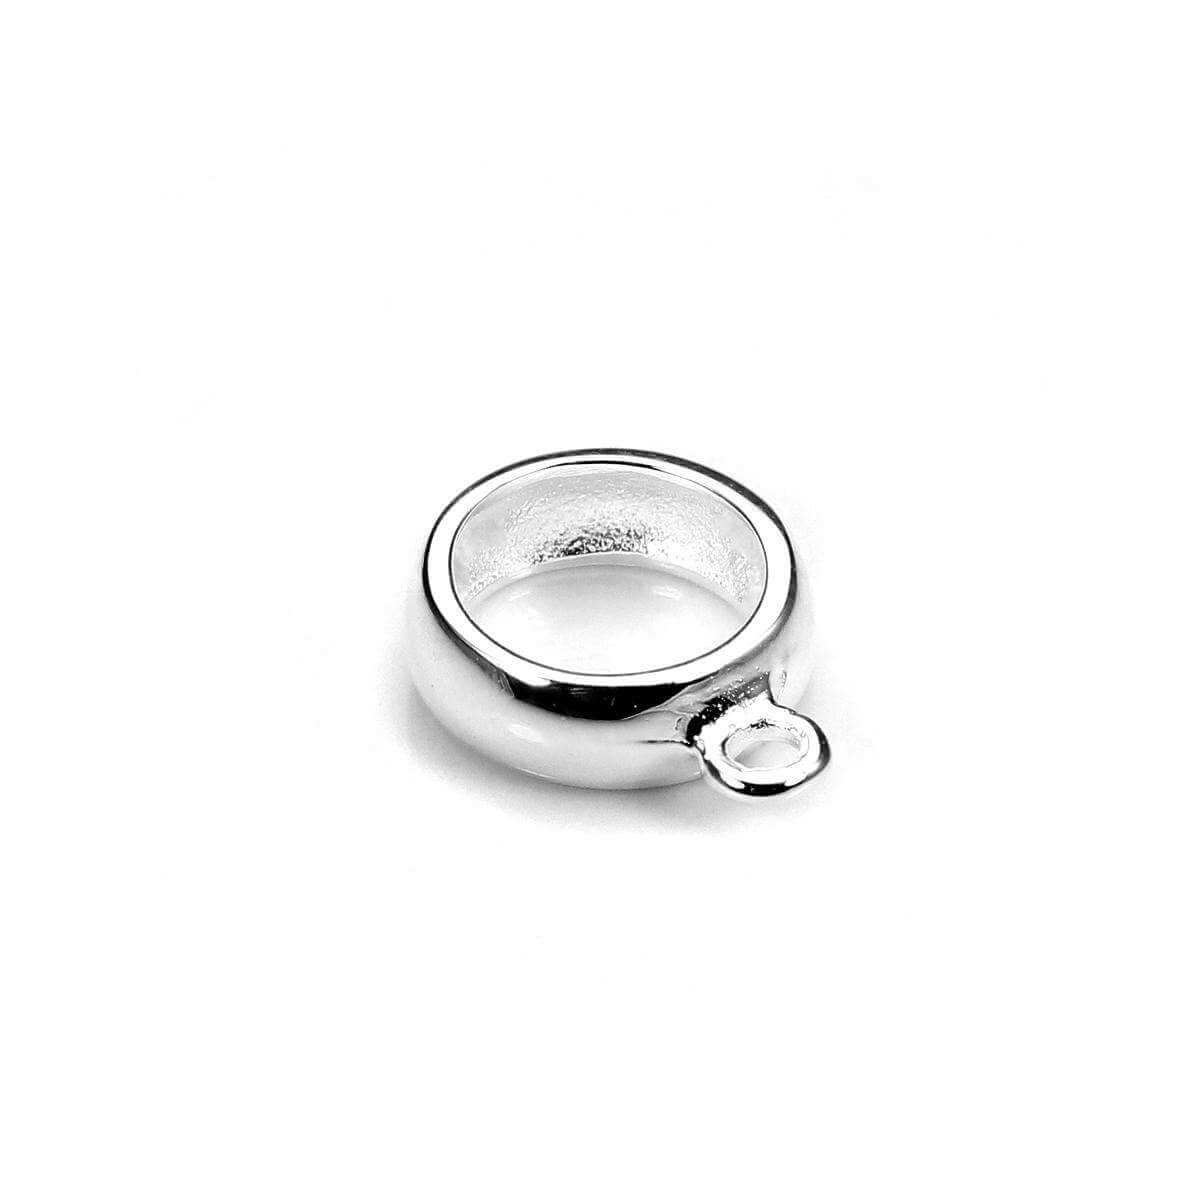 Sterling Silver 6.5mm Hanger Bead Charm